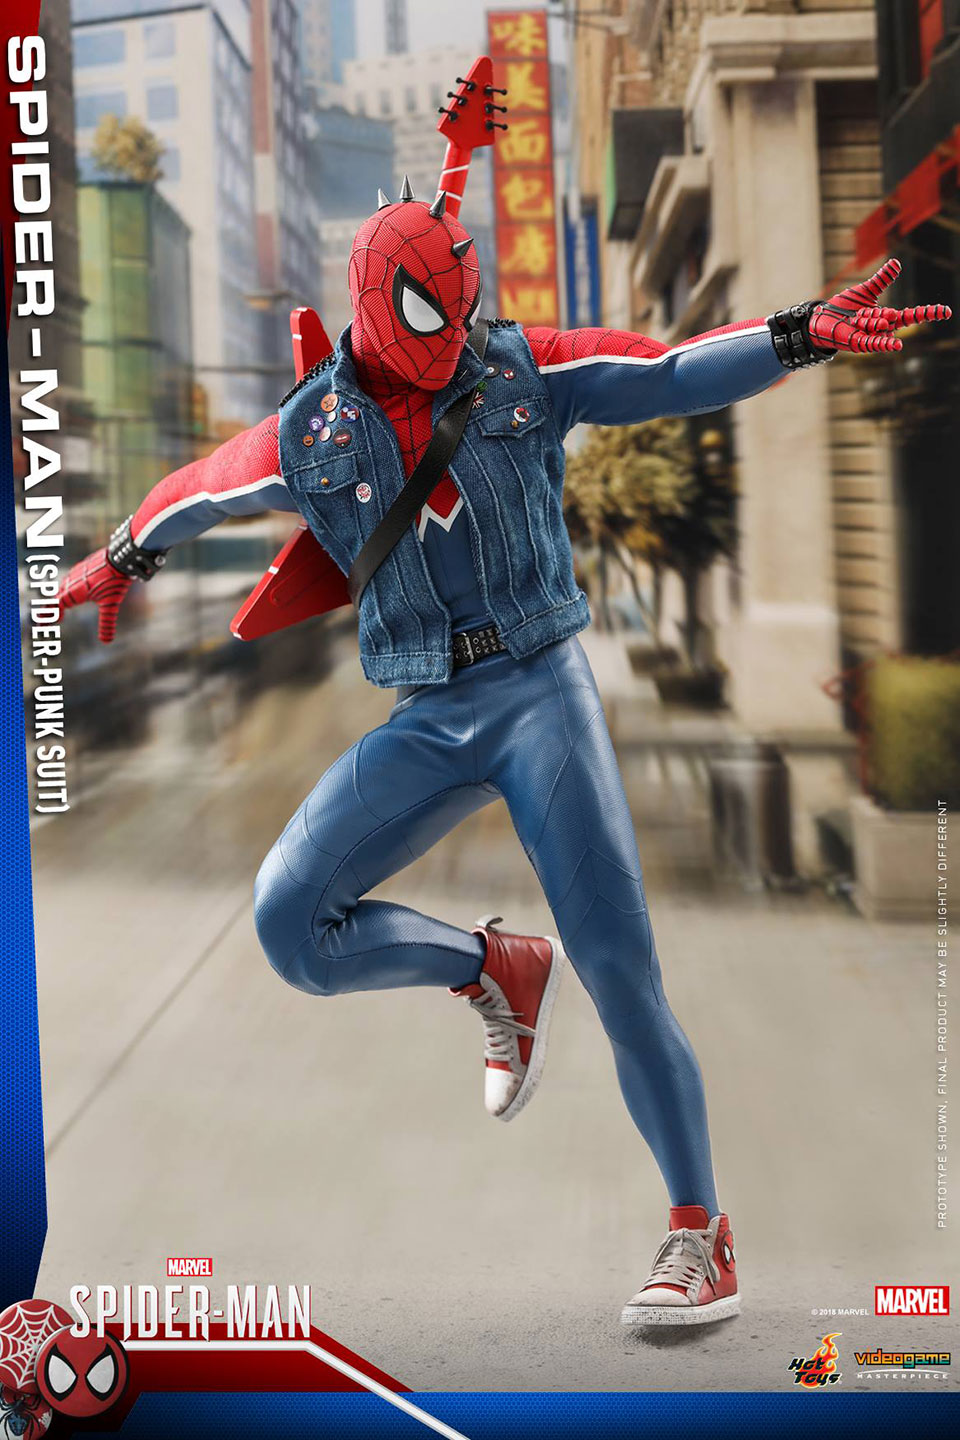 Spider-Man Spider-Punk Action Figure